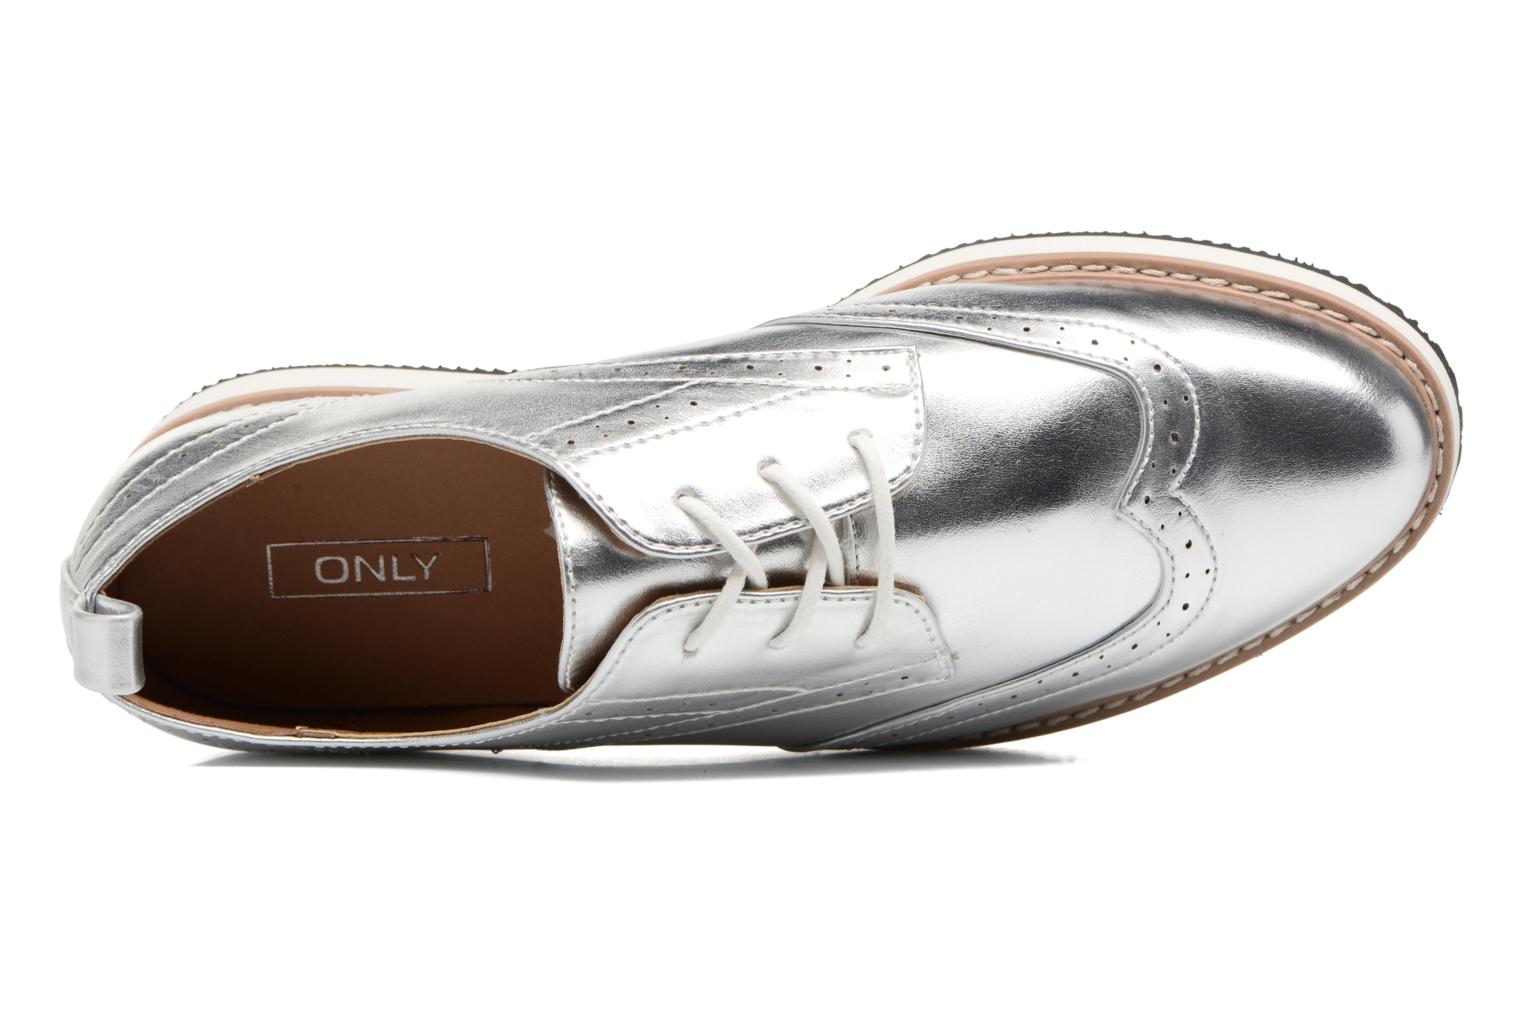 Chaussures à lacets ONLY Tyra pu lace up Argent vue gauche